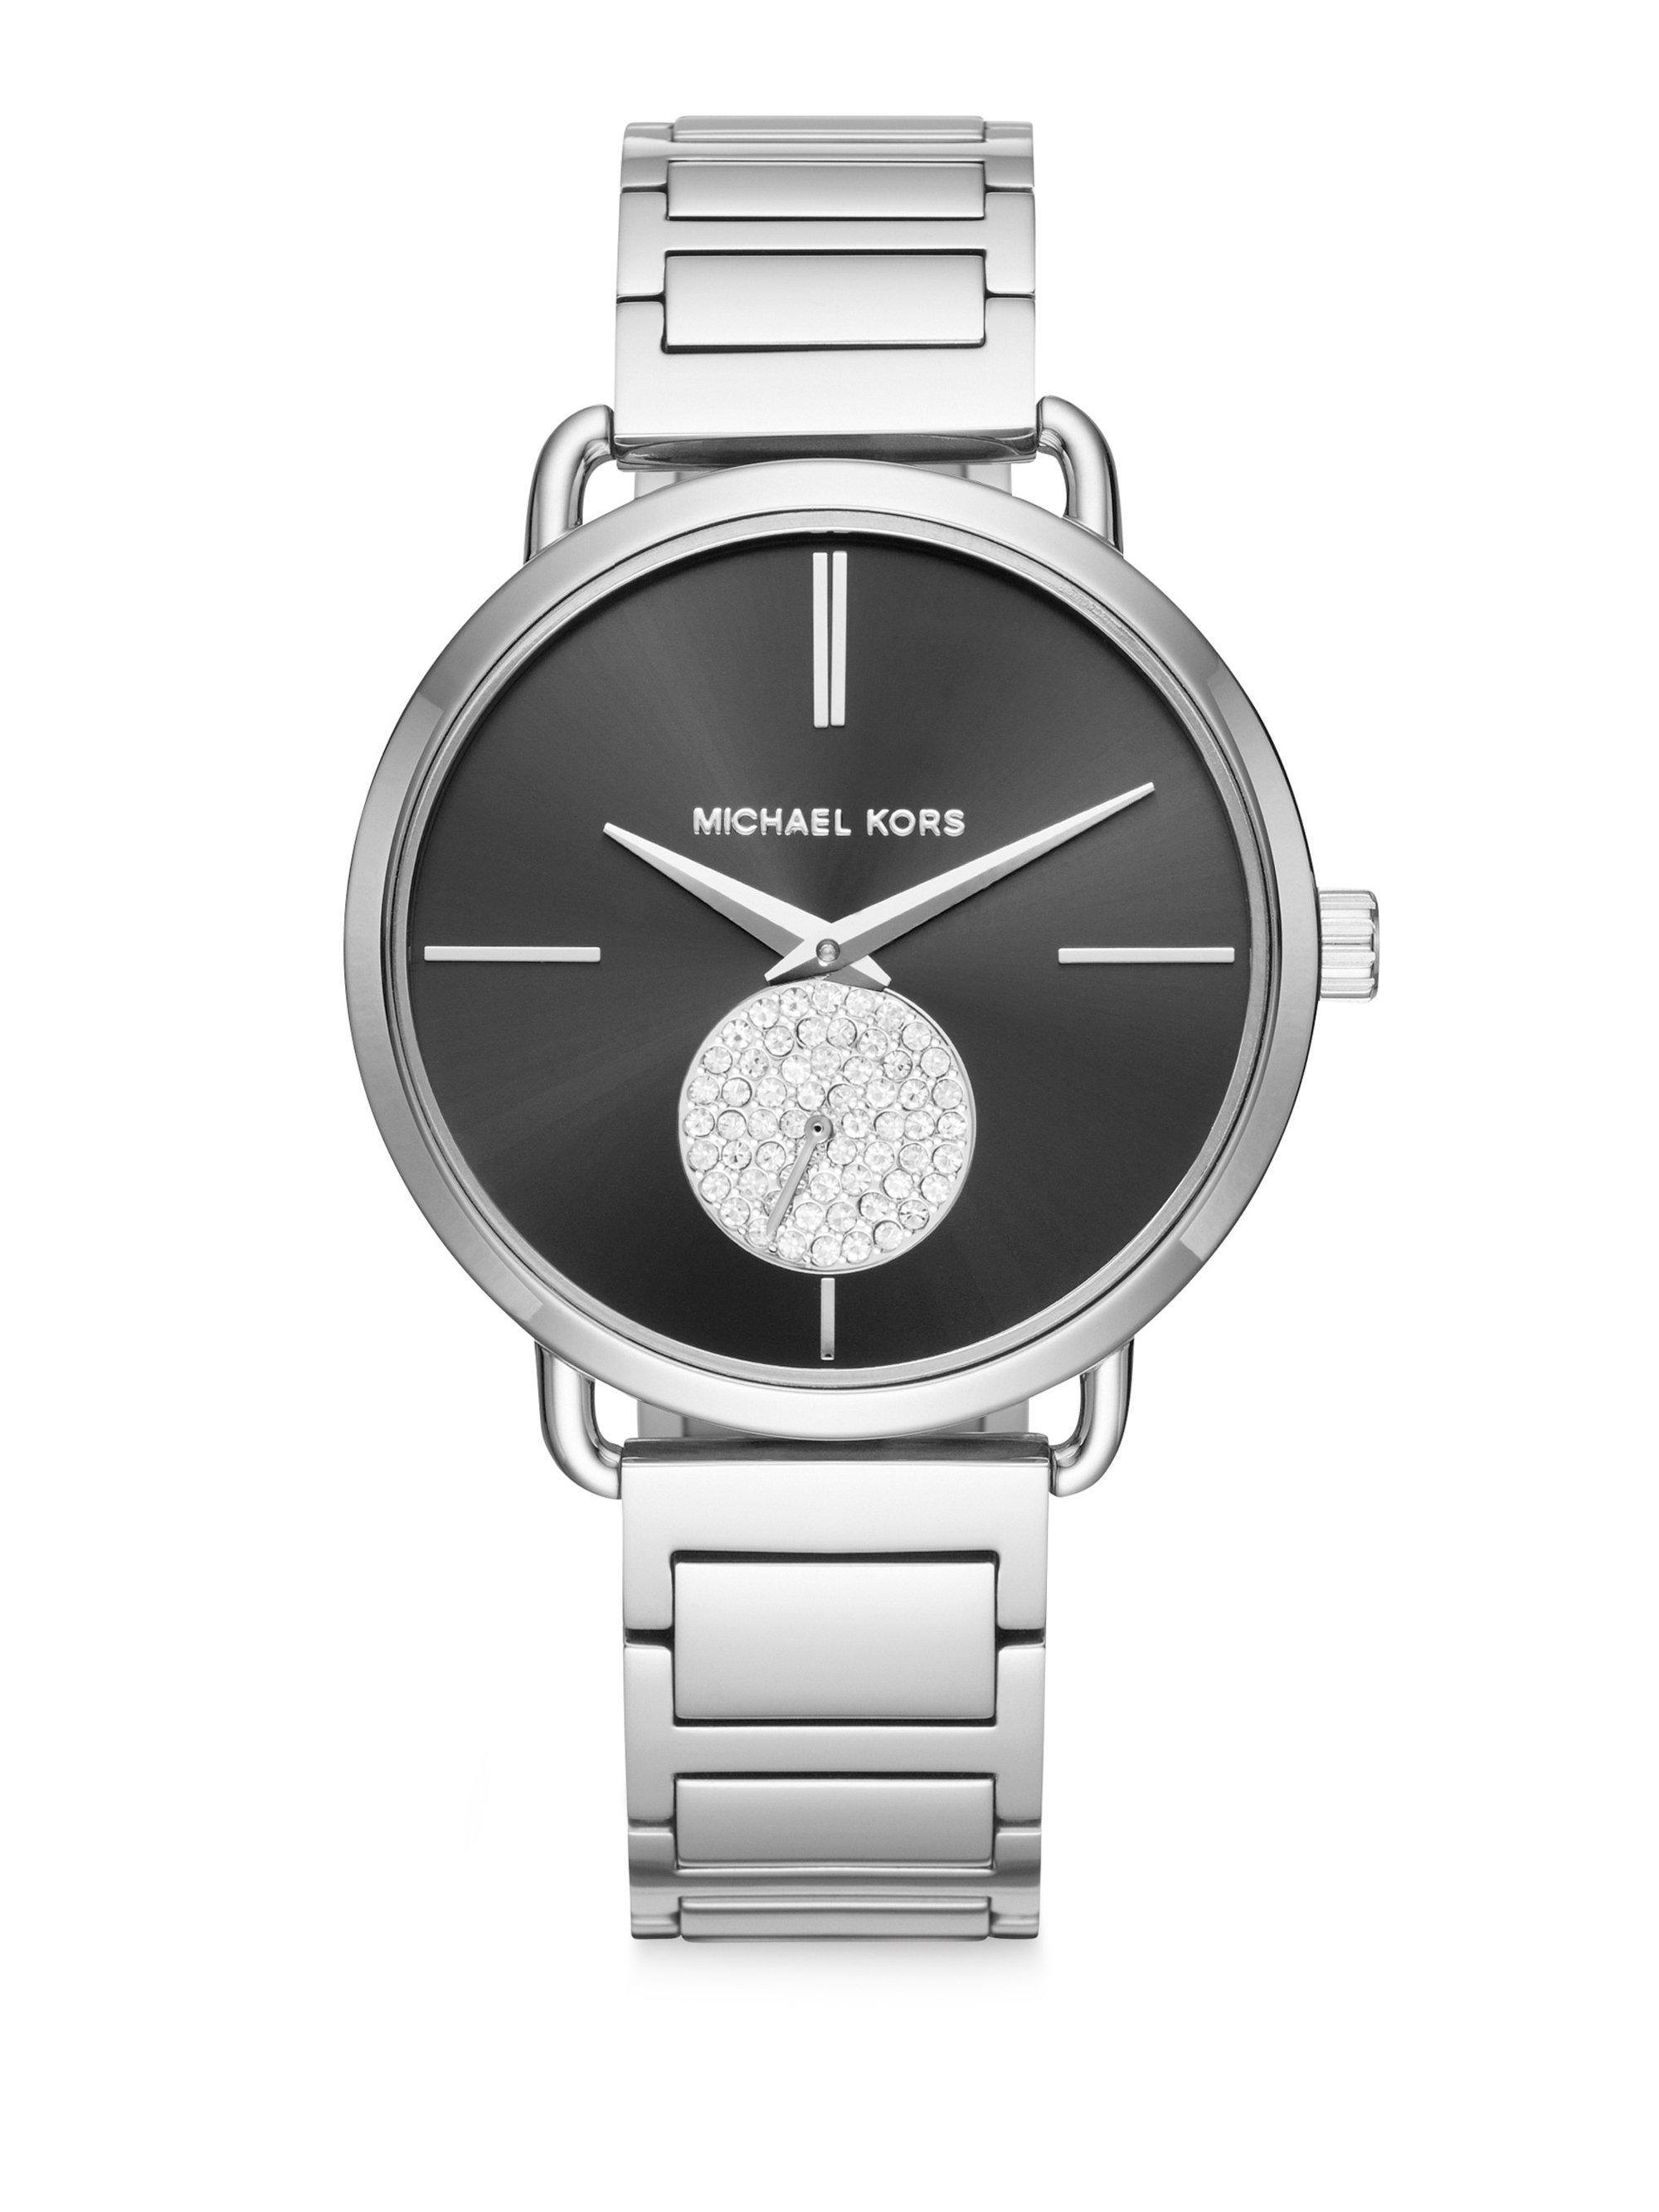 6a5493a7cac6f Lyst - Michael Kors Portia Stainless Steel Two-hand Sub-eye ...